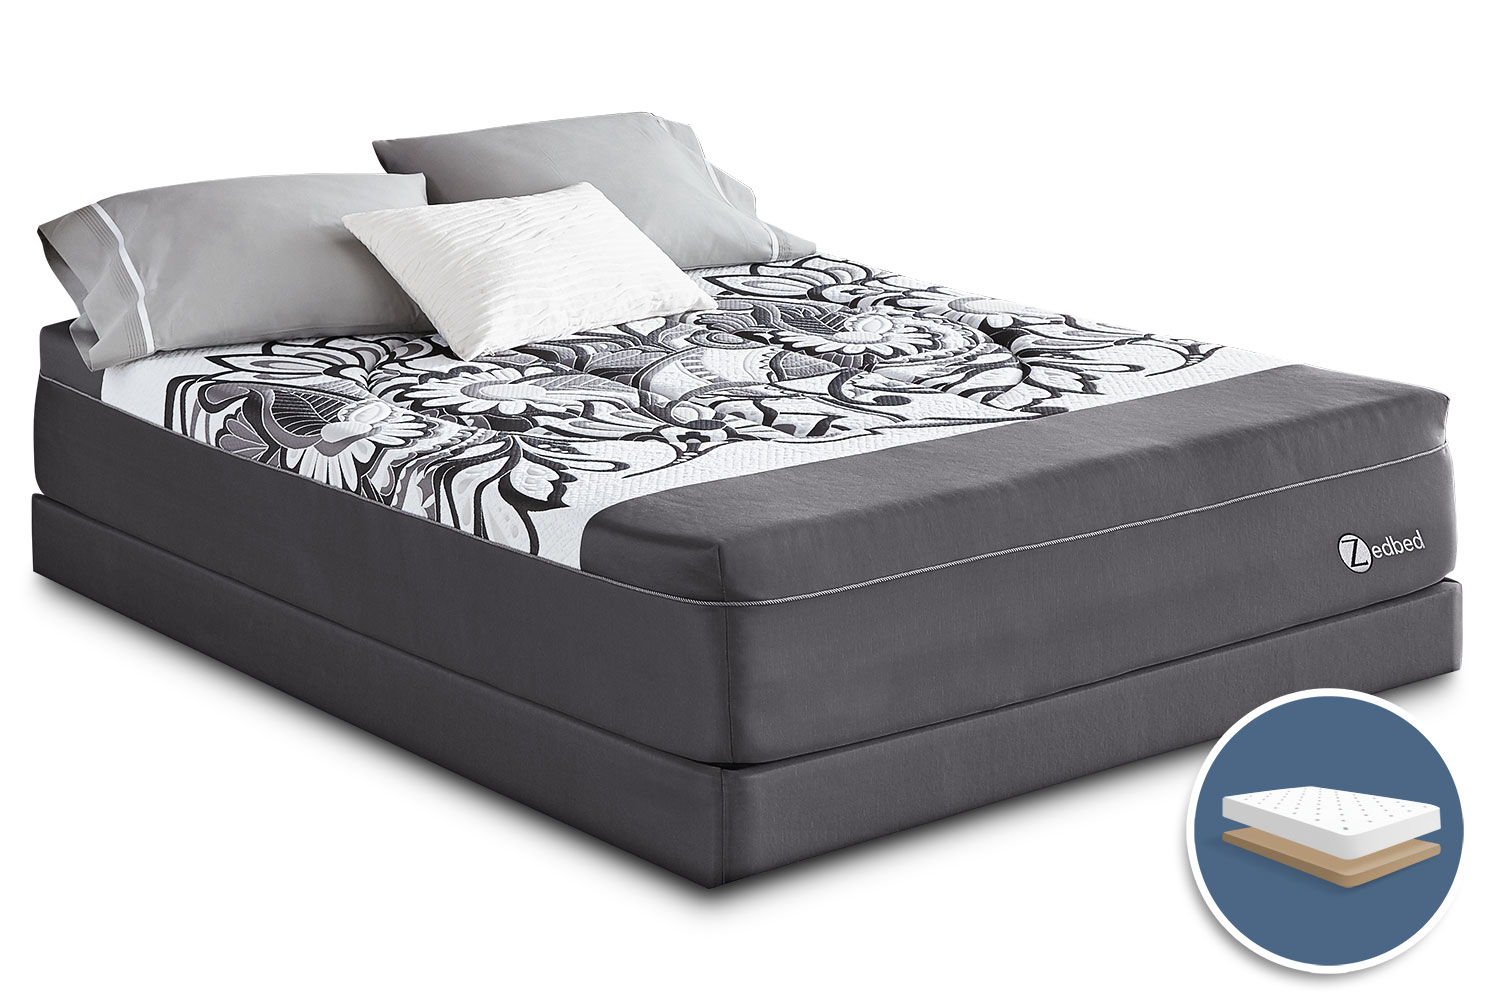 Mattresses and Bedding - Zedbed Vertuo Deluxe Tight-Top Low-Profile King Mattress Set